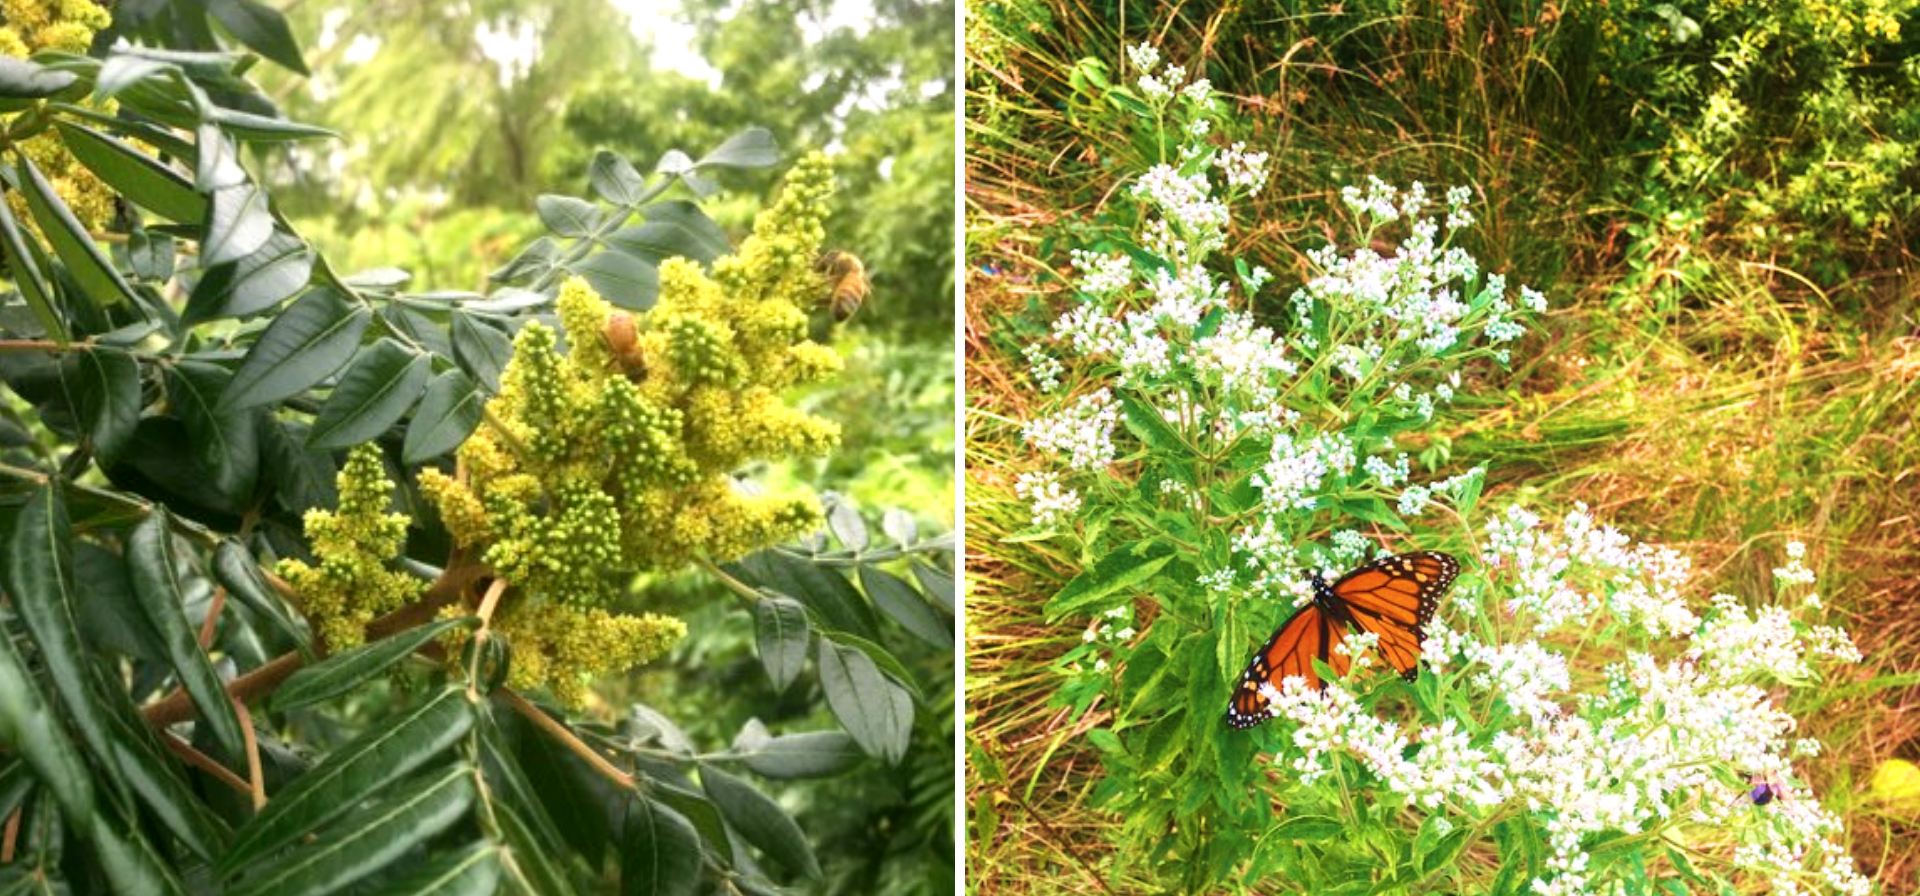 Figure 4. Bees and a monarch butterfly enjoying flowers in vegetated stormwater basins. Basins could provide important habitat area for threatened pollinators.